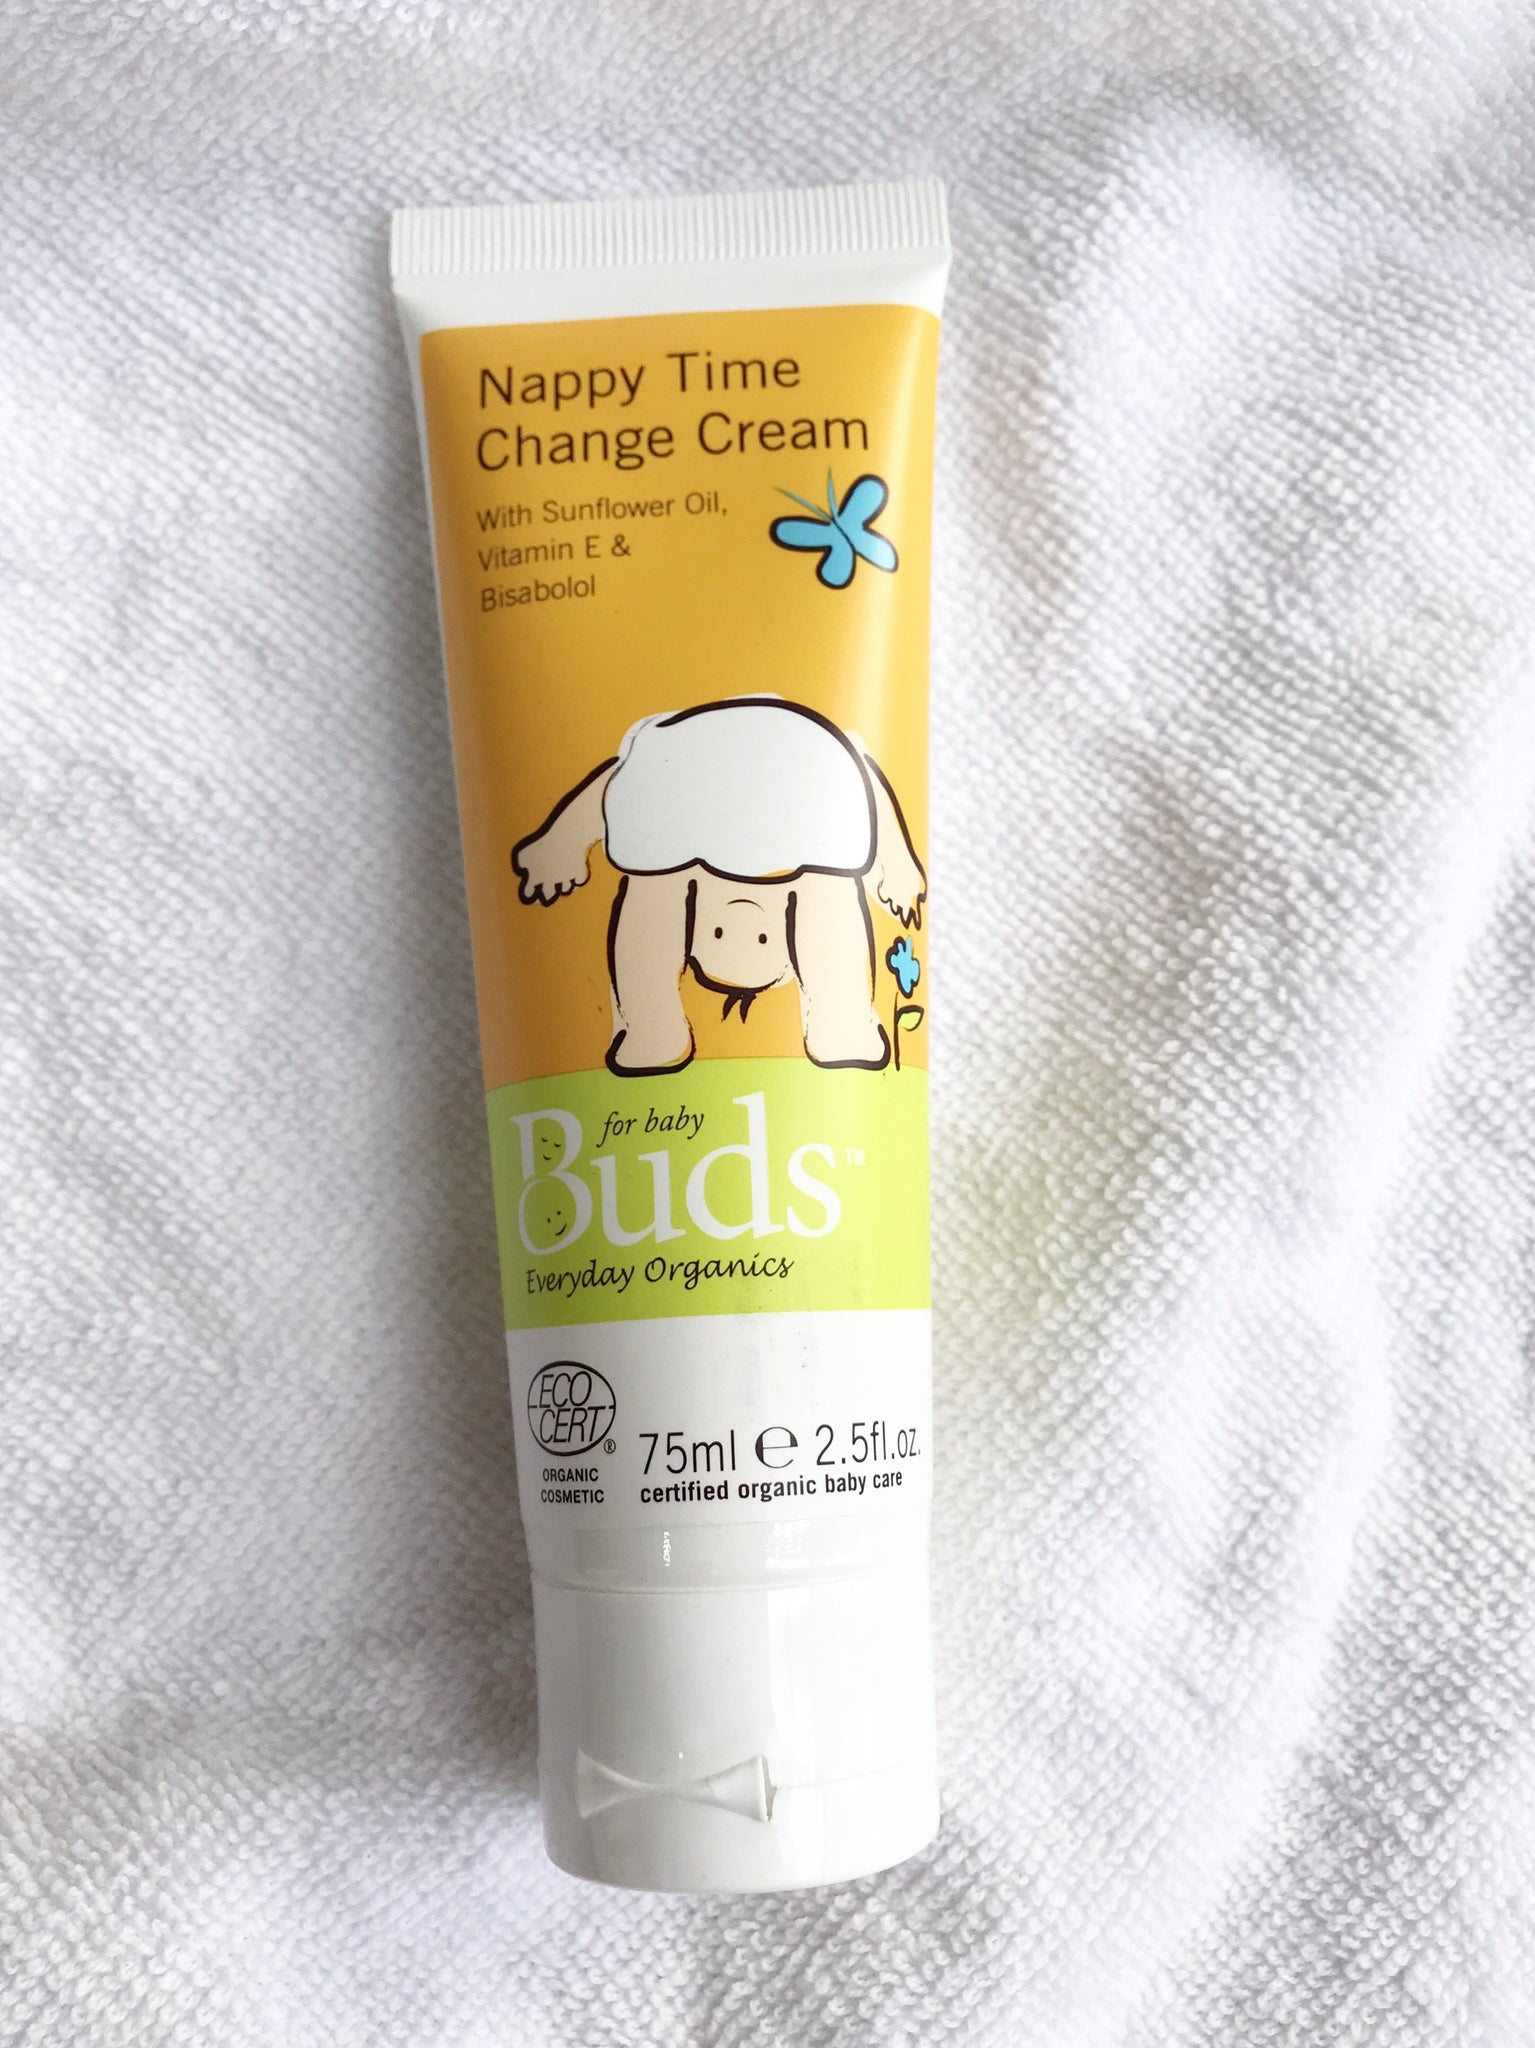 Buds Everyday Organics Nappy Time Change Cream 75ml - certified organic by ECOCERT